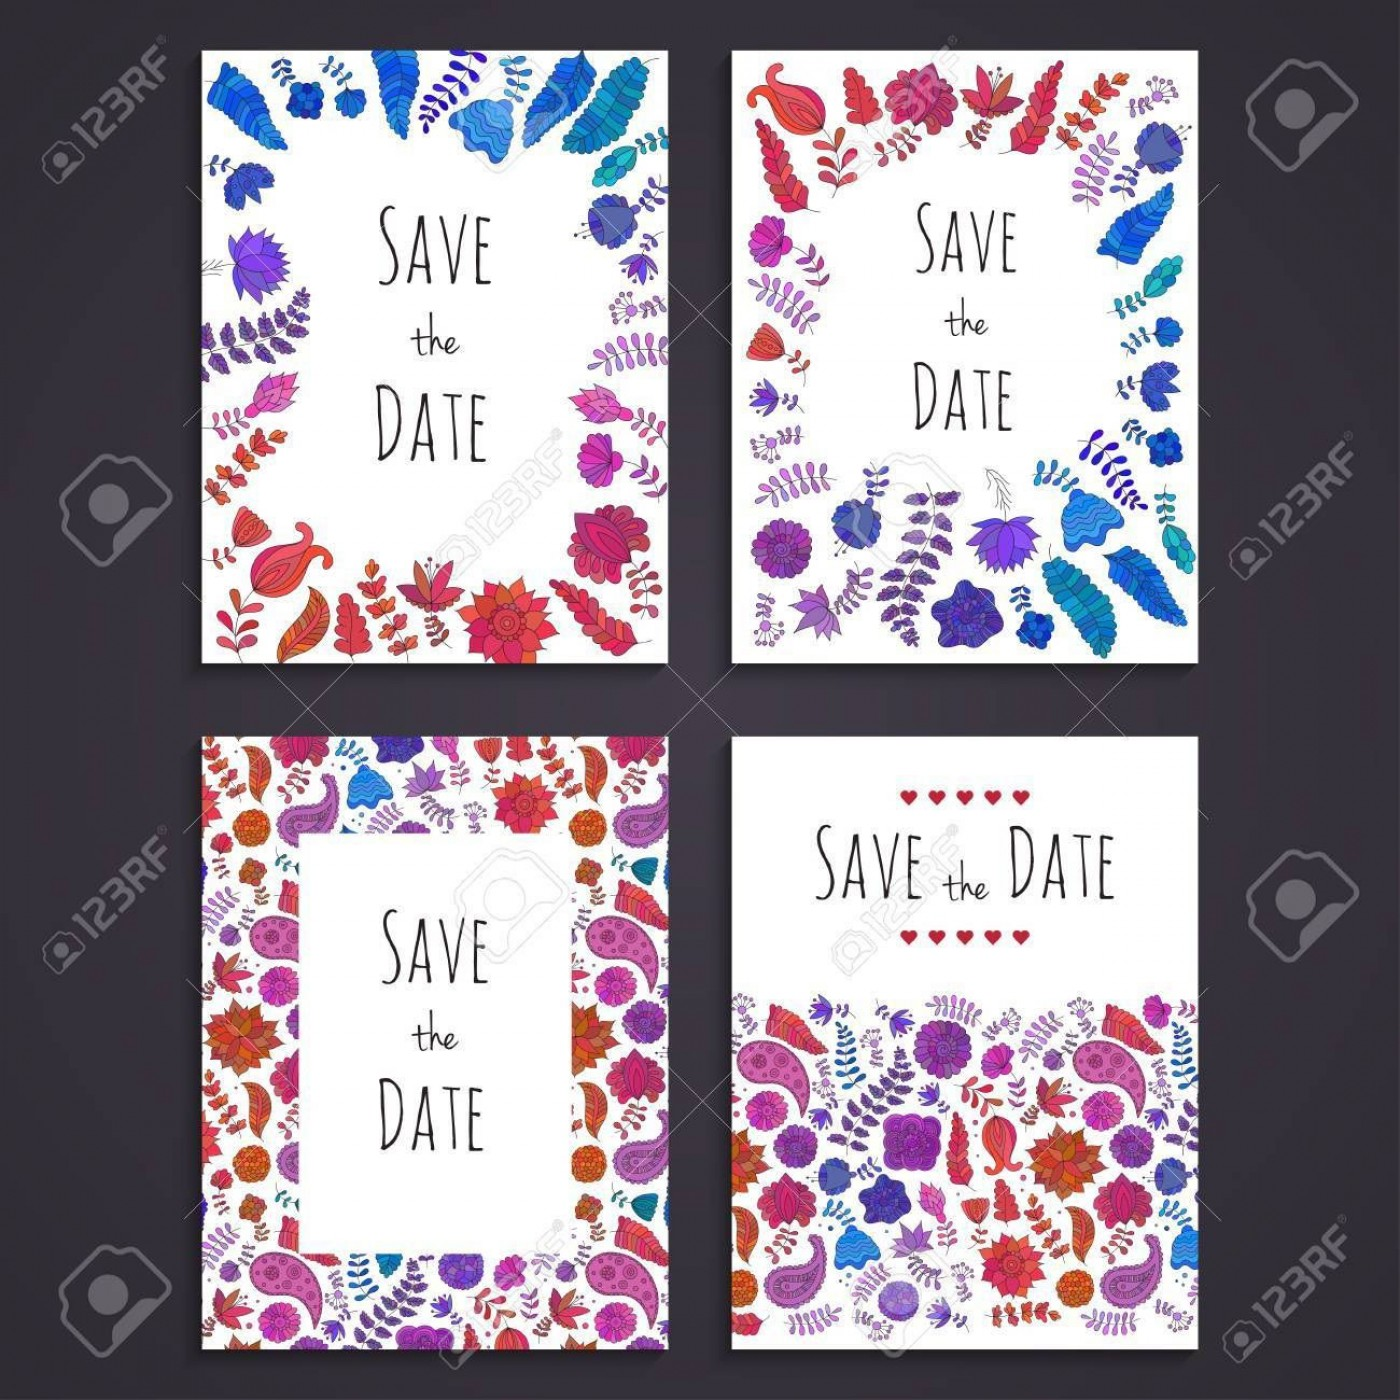 003 Staggering Free Save The Date Birthday Postcard Template High Def 1400